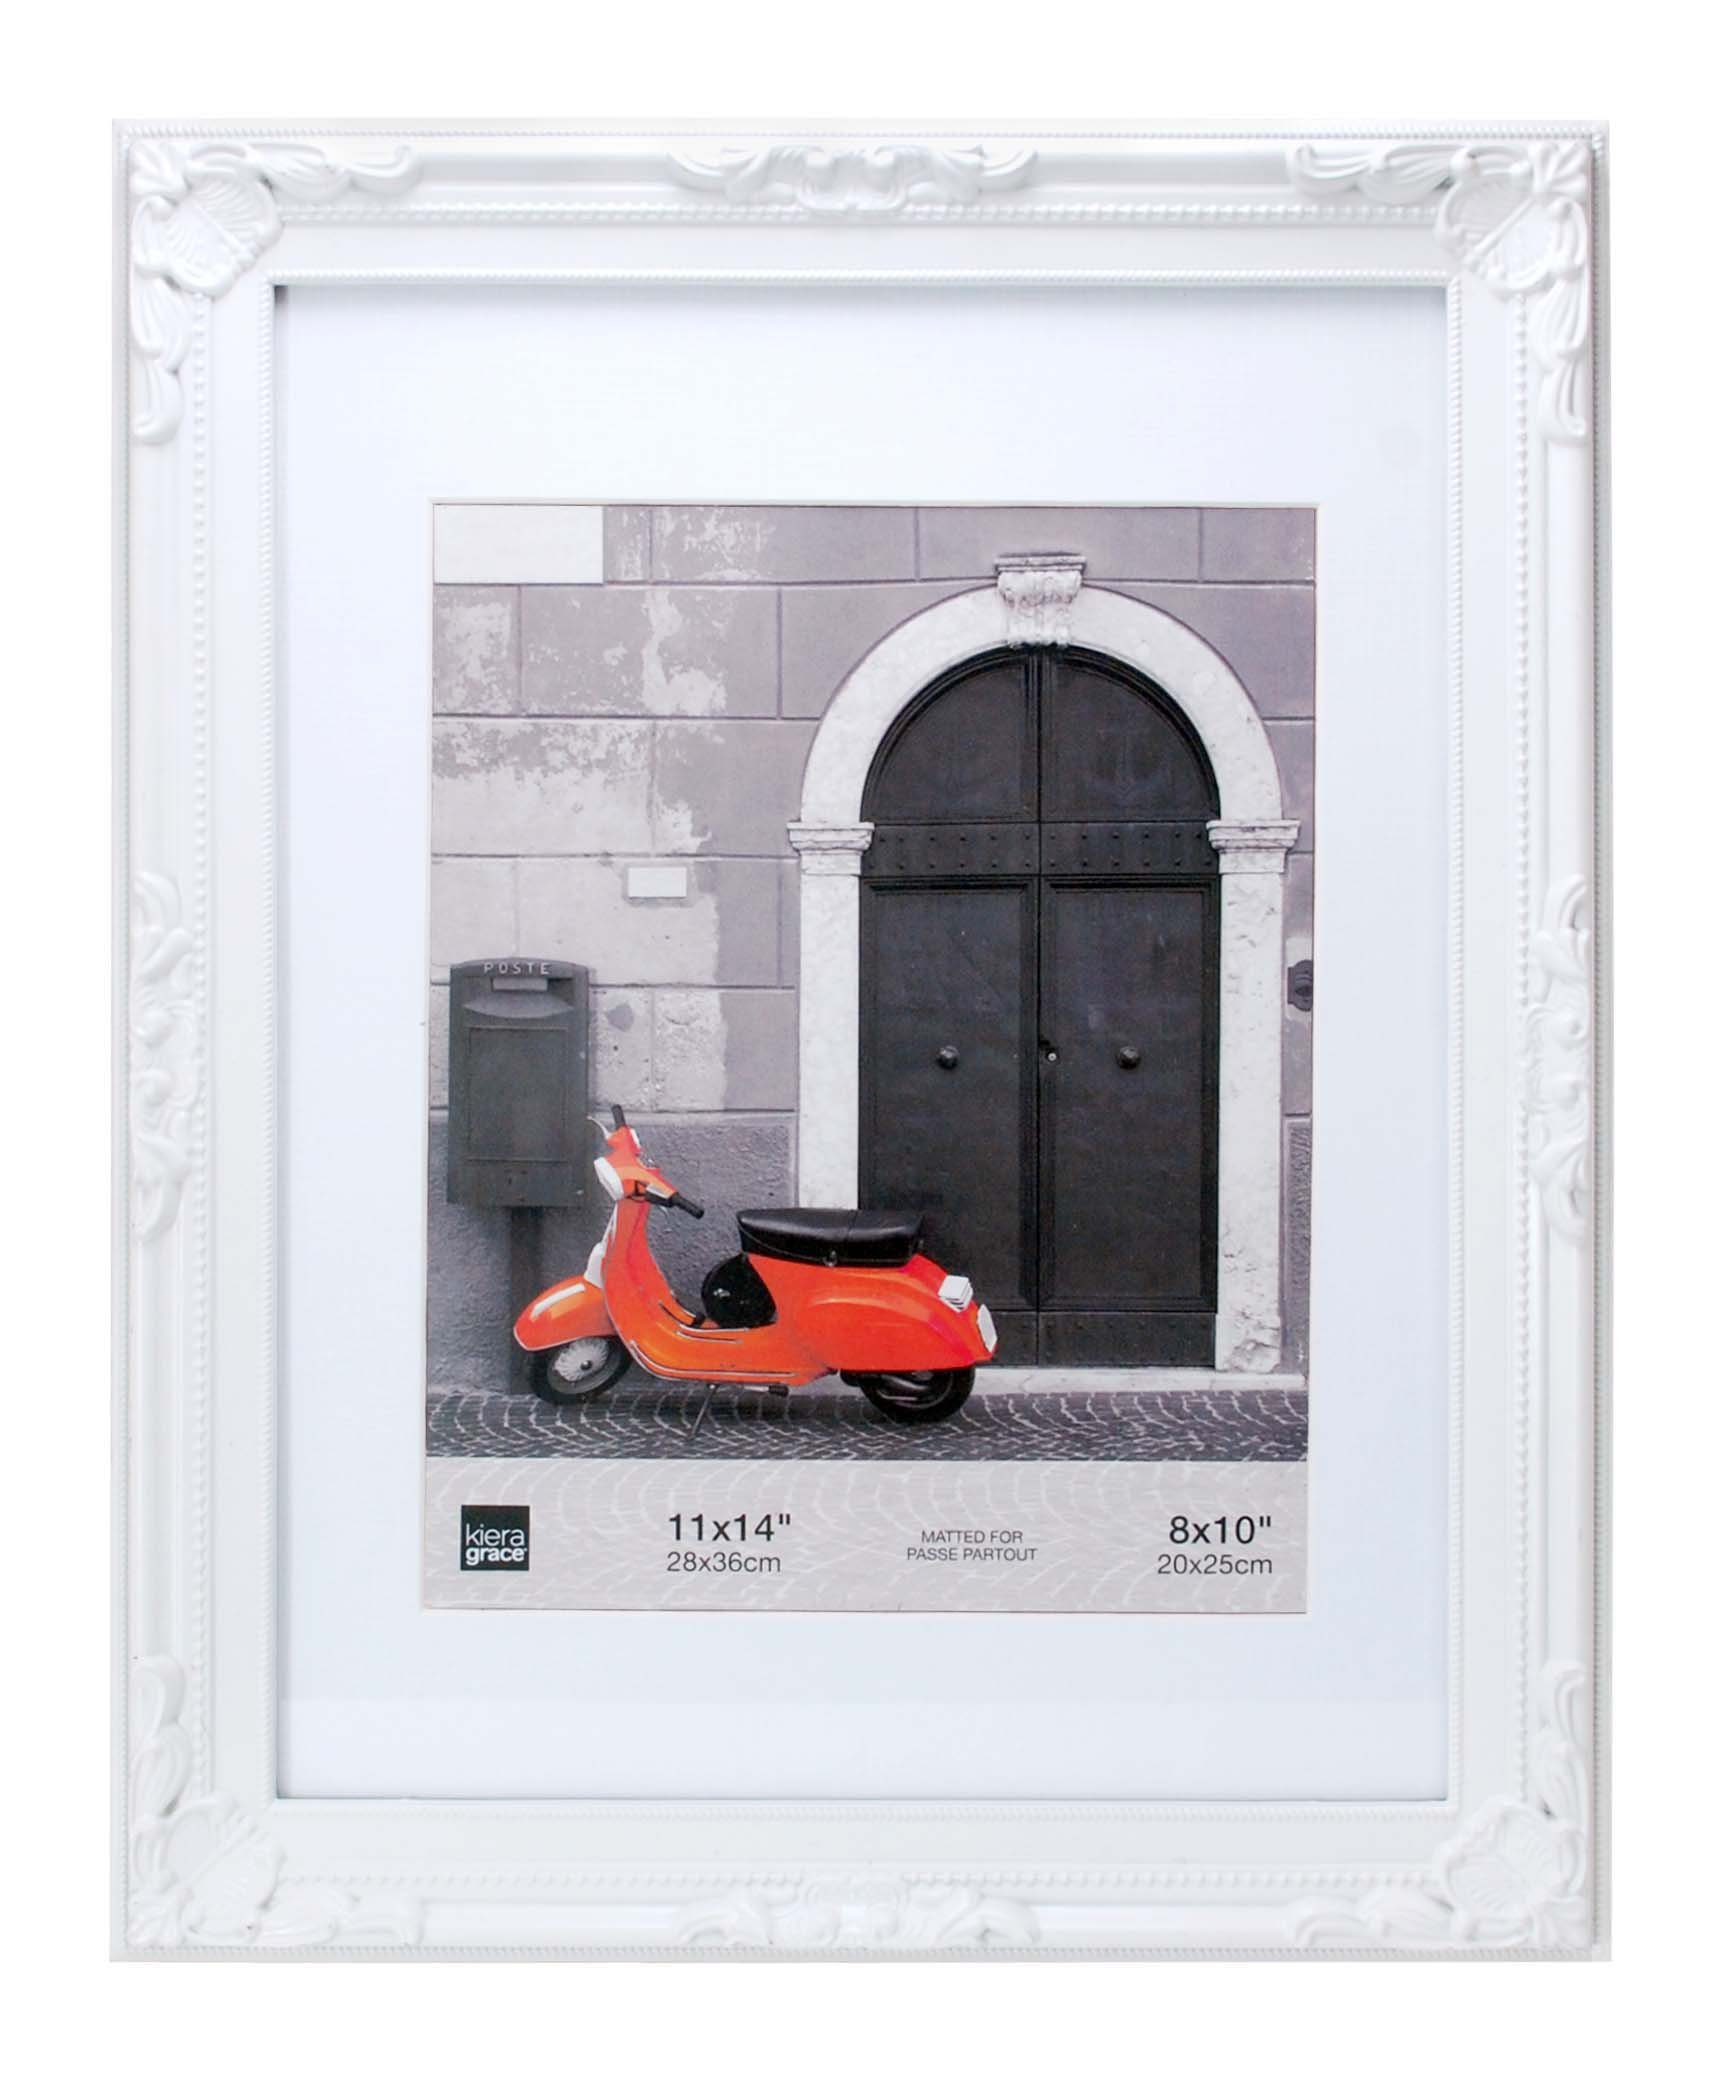 "kieragrace PH43925 Traditional luxury-frames, 11 by 14-Inch, White - HOLDS 8"" X 10"" IN WHITE FRAME – Opening measures 11"" x 14""; you can hold your 8"" by 10"" documents in the acid-free mat. Hold all your memories in beautiful frames. STURDY RESIN CONSTRUCTION – Quality plastic frame provides sturdy, lasting style. Rely on this frame to keep your photos safe and sound, with a handpainted, distressed finish. DISTINCTIVE STYLE - You'll love the compliments you get with Georgia frames. This frame has a ornate, unique patterns and a beaded design along inner border of the frame. Display art and photo prints of friends, family, vacations, and more! - picture-frames, bedroom-decor, bedroom - 71sLcTOi1XL -"